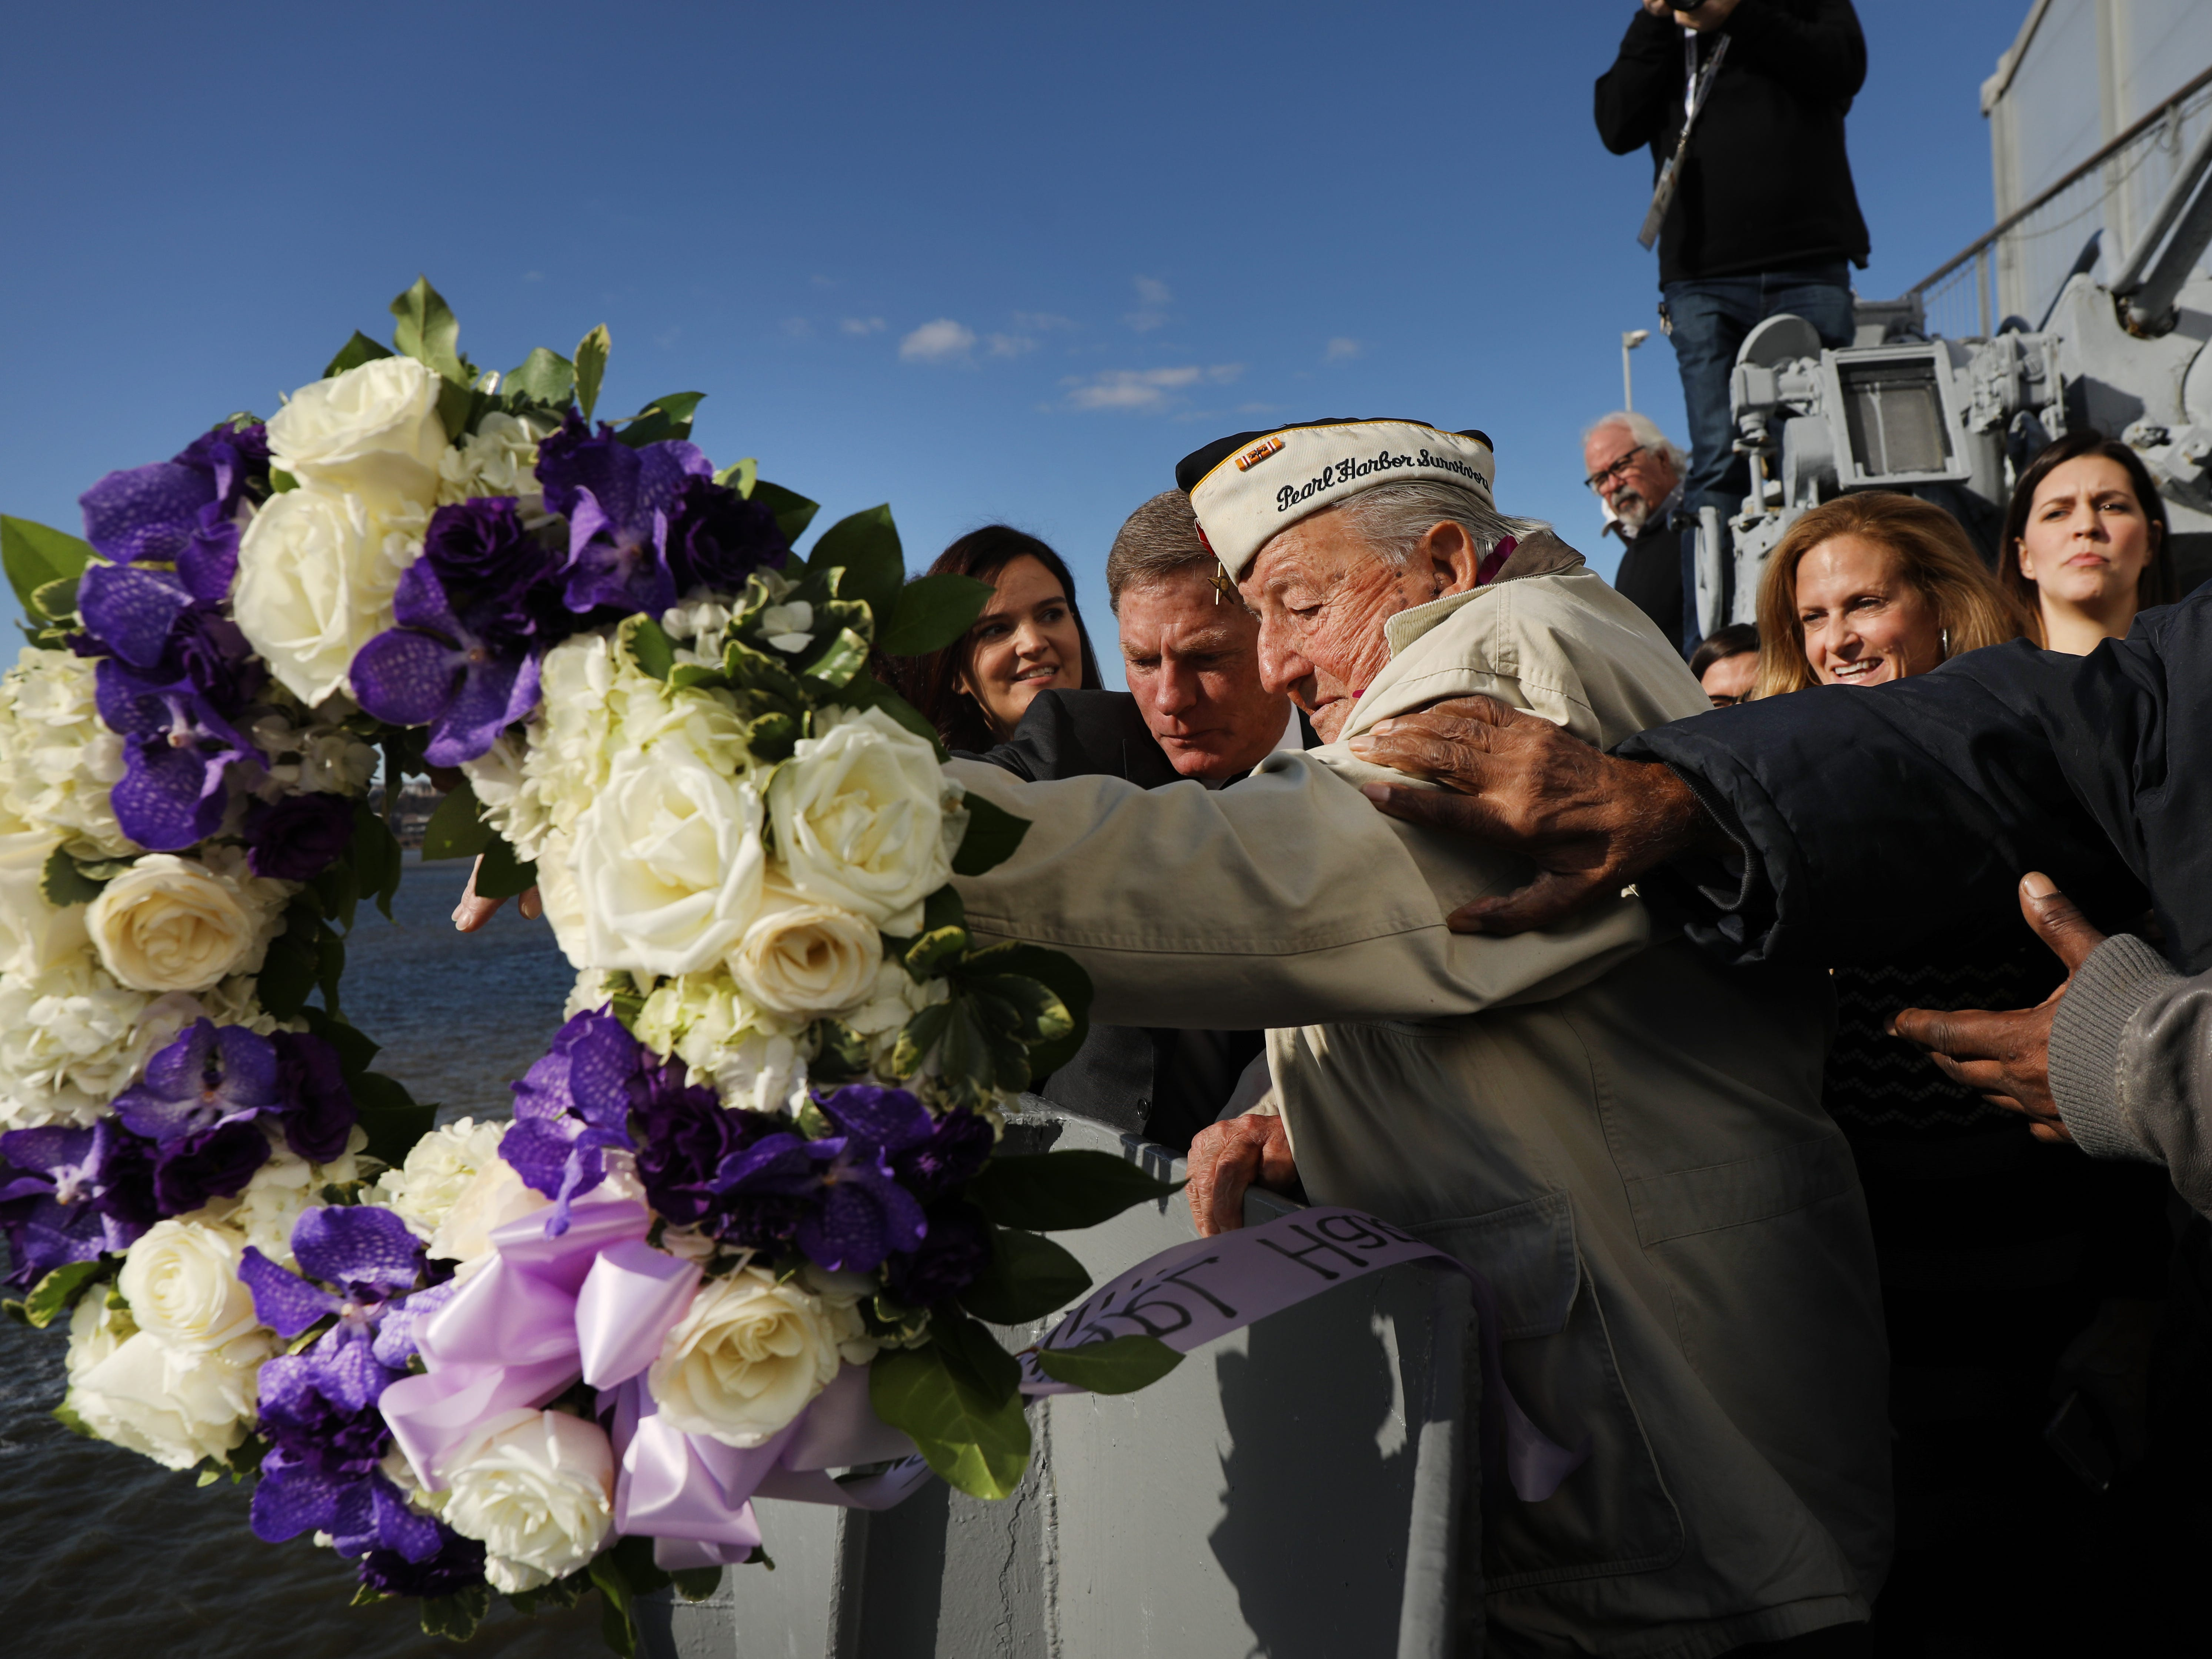 "Local Pearl Harbor survivor Armando ""Chick"" Galella, 97, throws a wreath off of the USS Intrepid at an event marking the 77th Anniversary of the attack on Pearl Harbor on Dec. 07, 2018 in New York City. Japanese bombers attacked Pearl Harbor on December 7, 1941 resulting in the deaths of 1,177 crew members on the US Arizona. The attack prompted the United States to declare war on Japan and shortly after Germany."